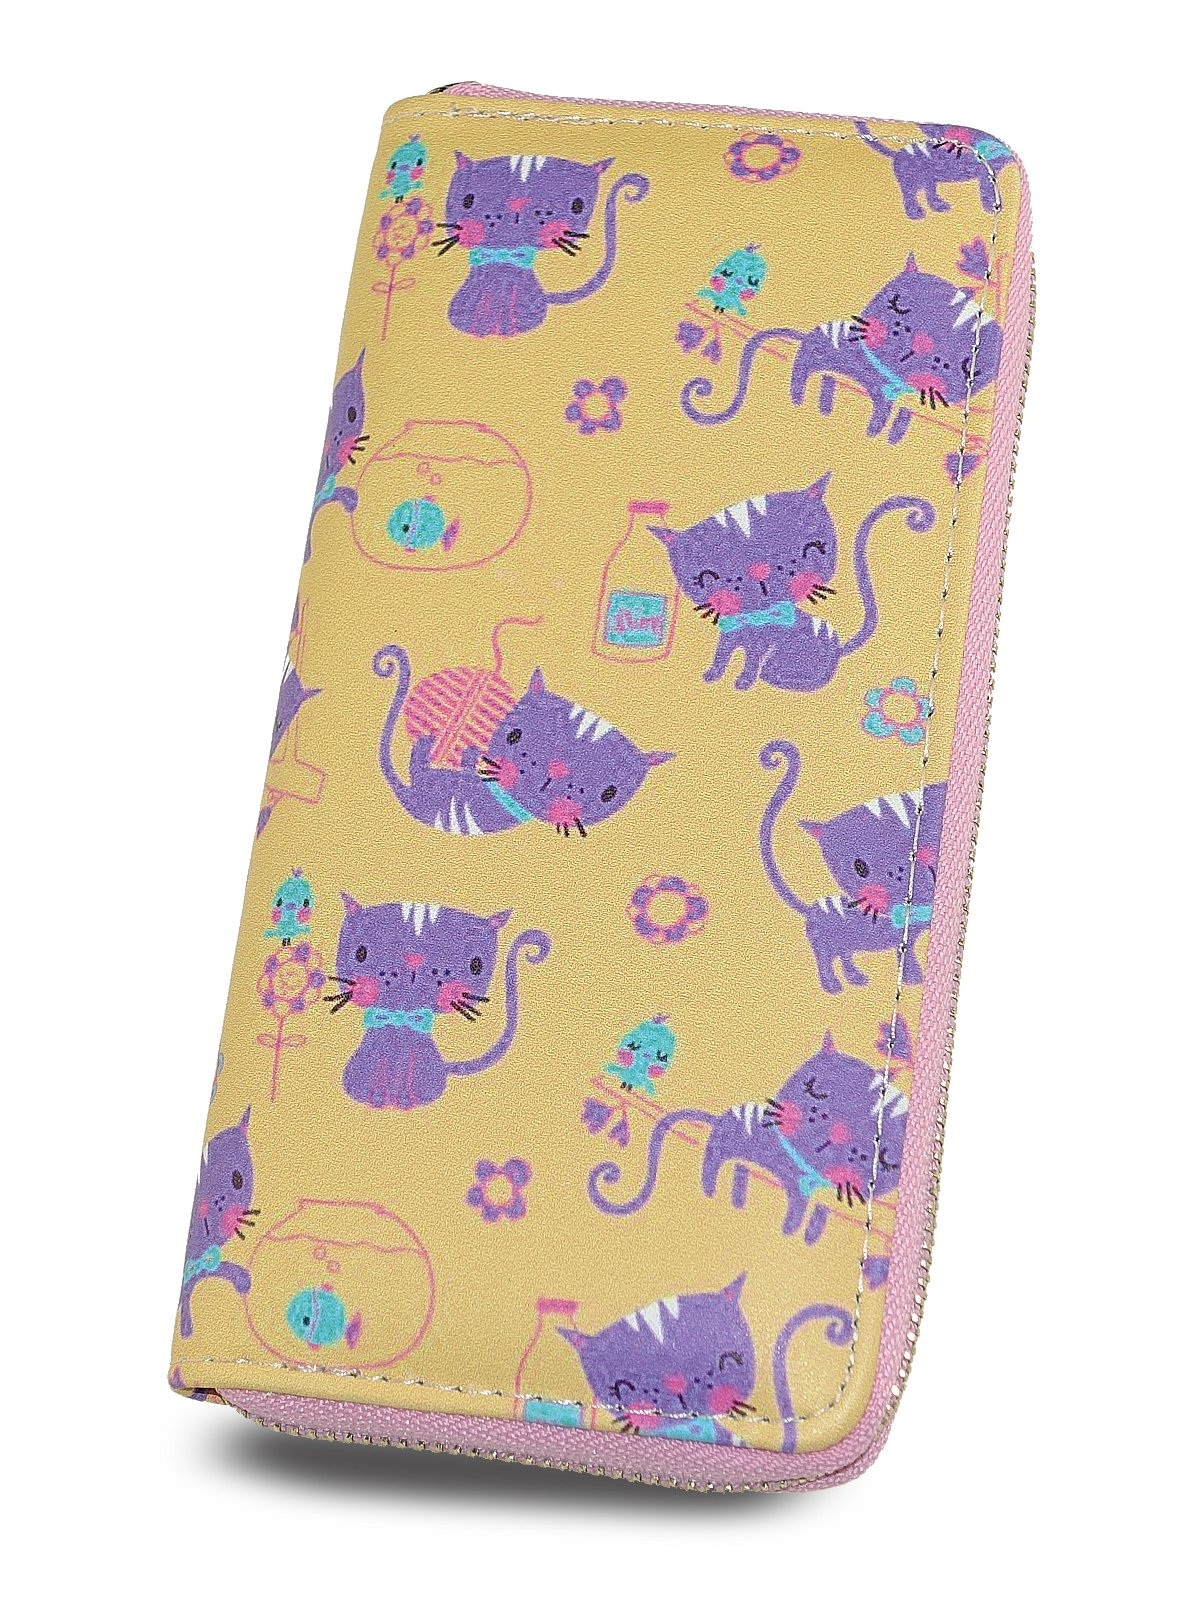 Zipper Clutch Wallet for women and teen girls, Print Lovely Cat, Lady Purse by TZECHO